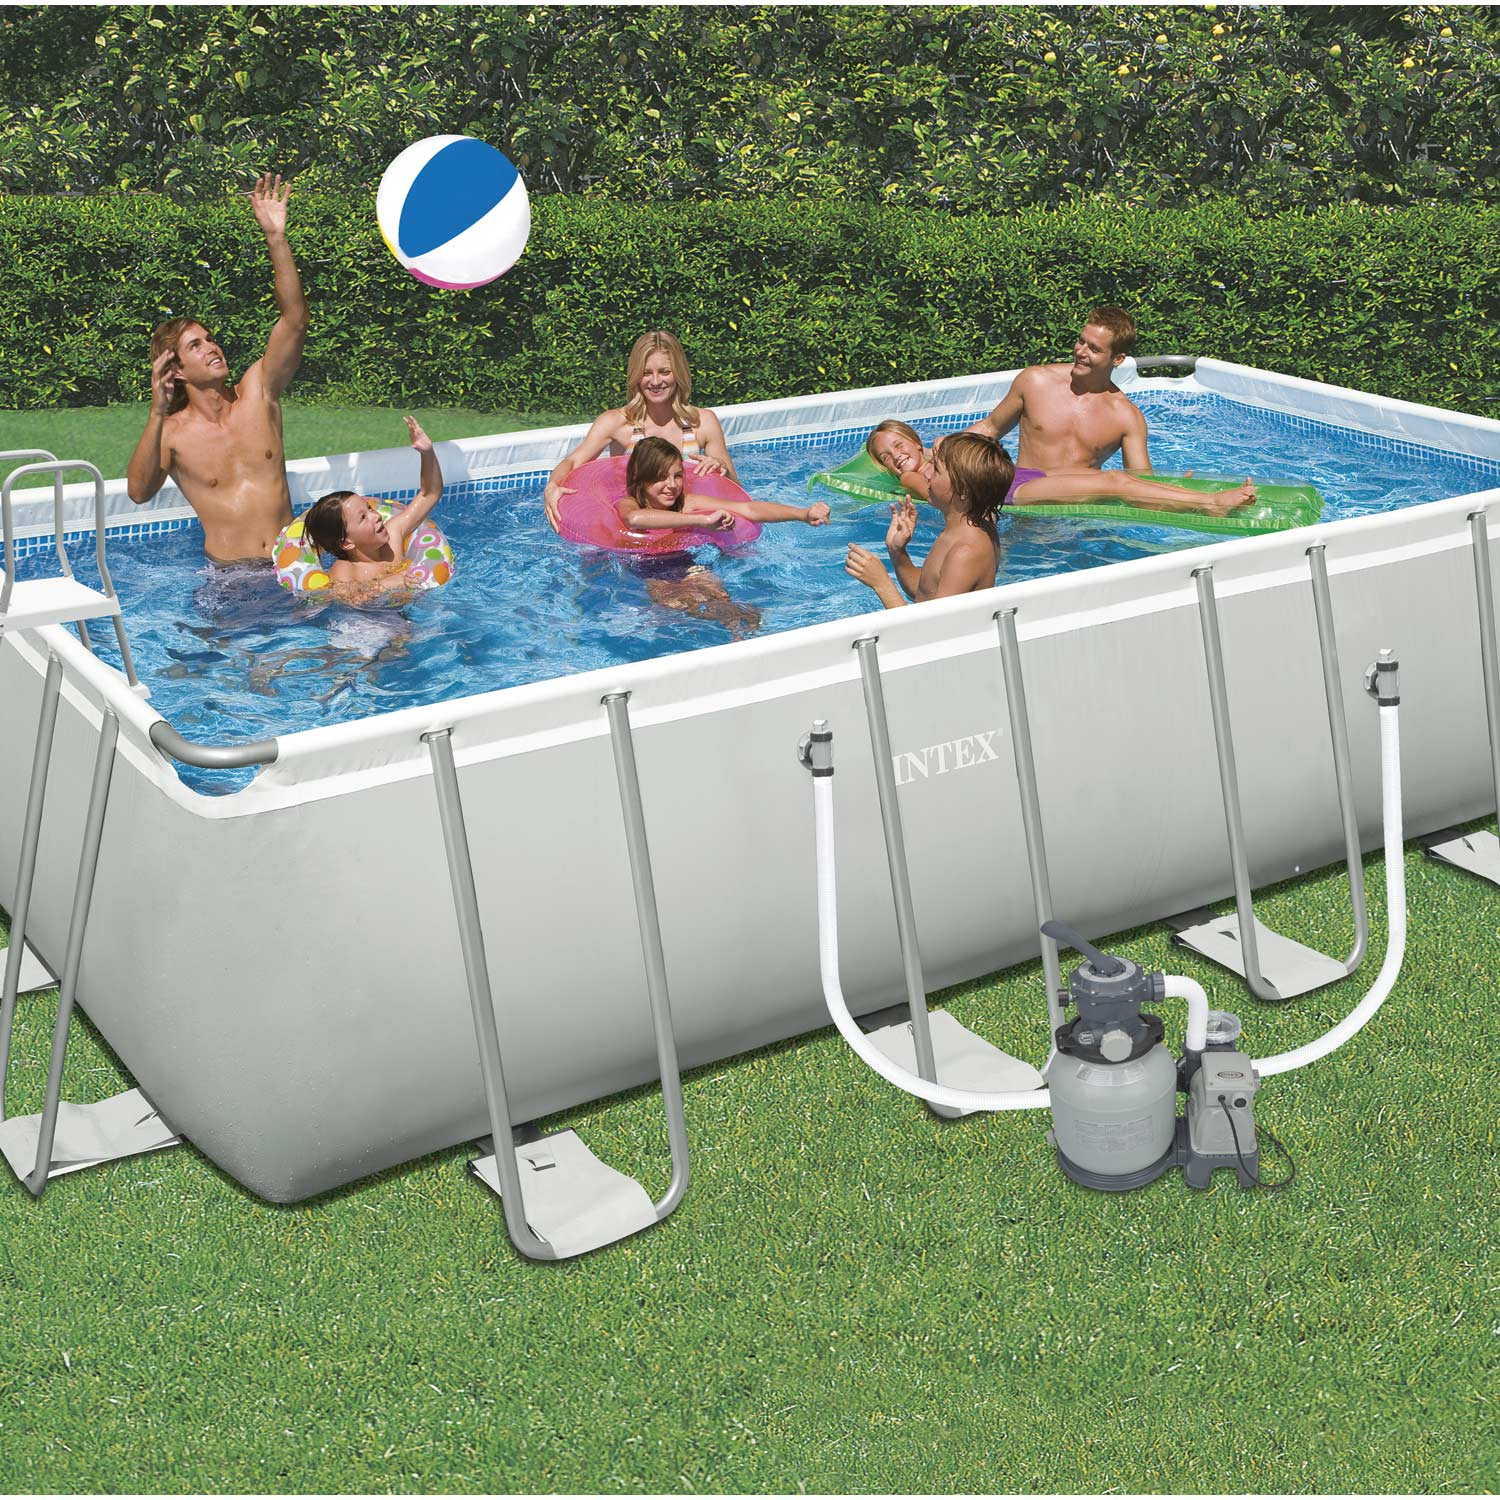 Piscine hors sol autoportante tubulaire ultra silver intex for Piscine hors sol ultra frame